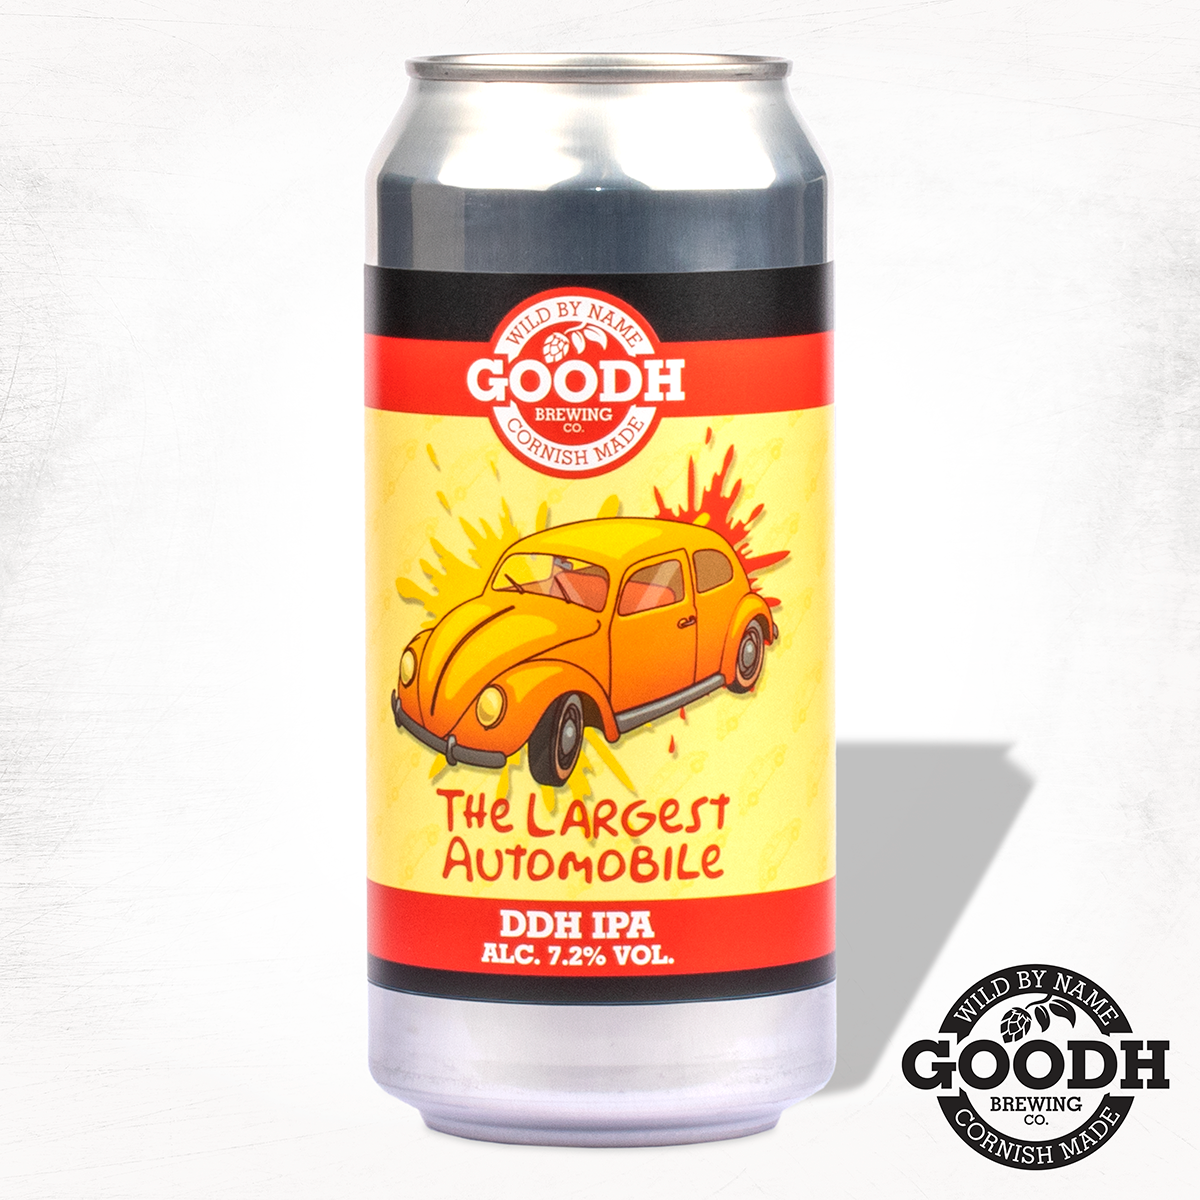 Goodh Brewing - The Largest Automobile - DDH IPA - 440ml Can